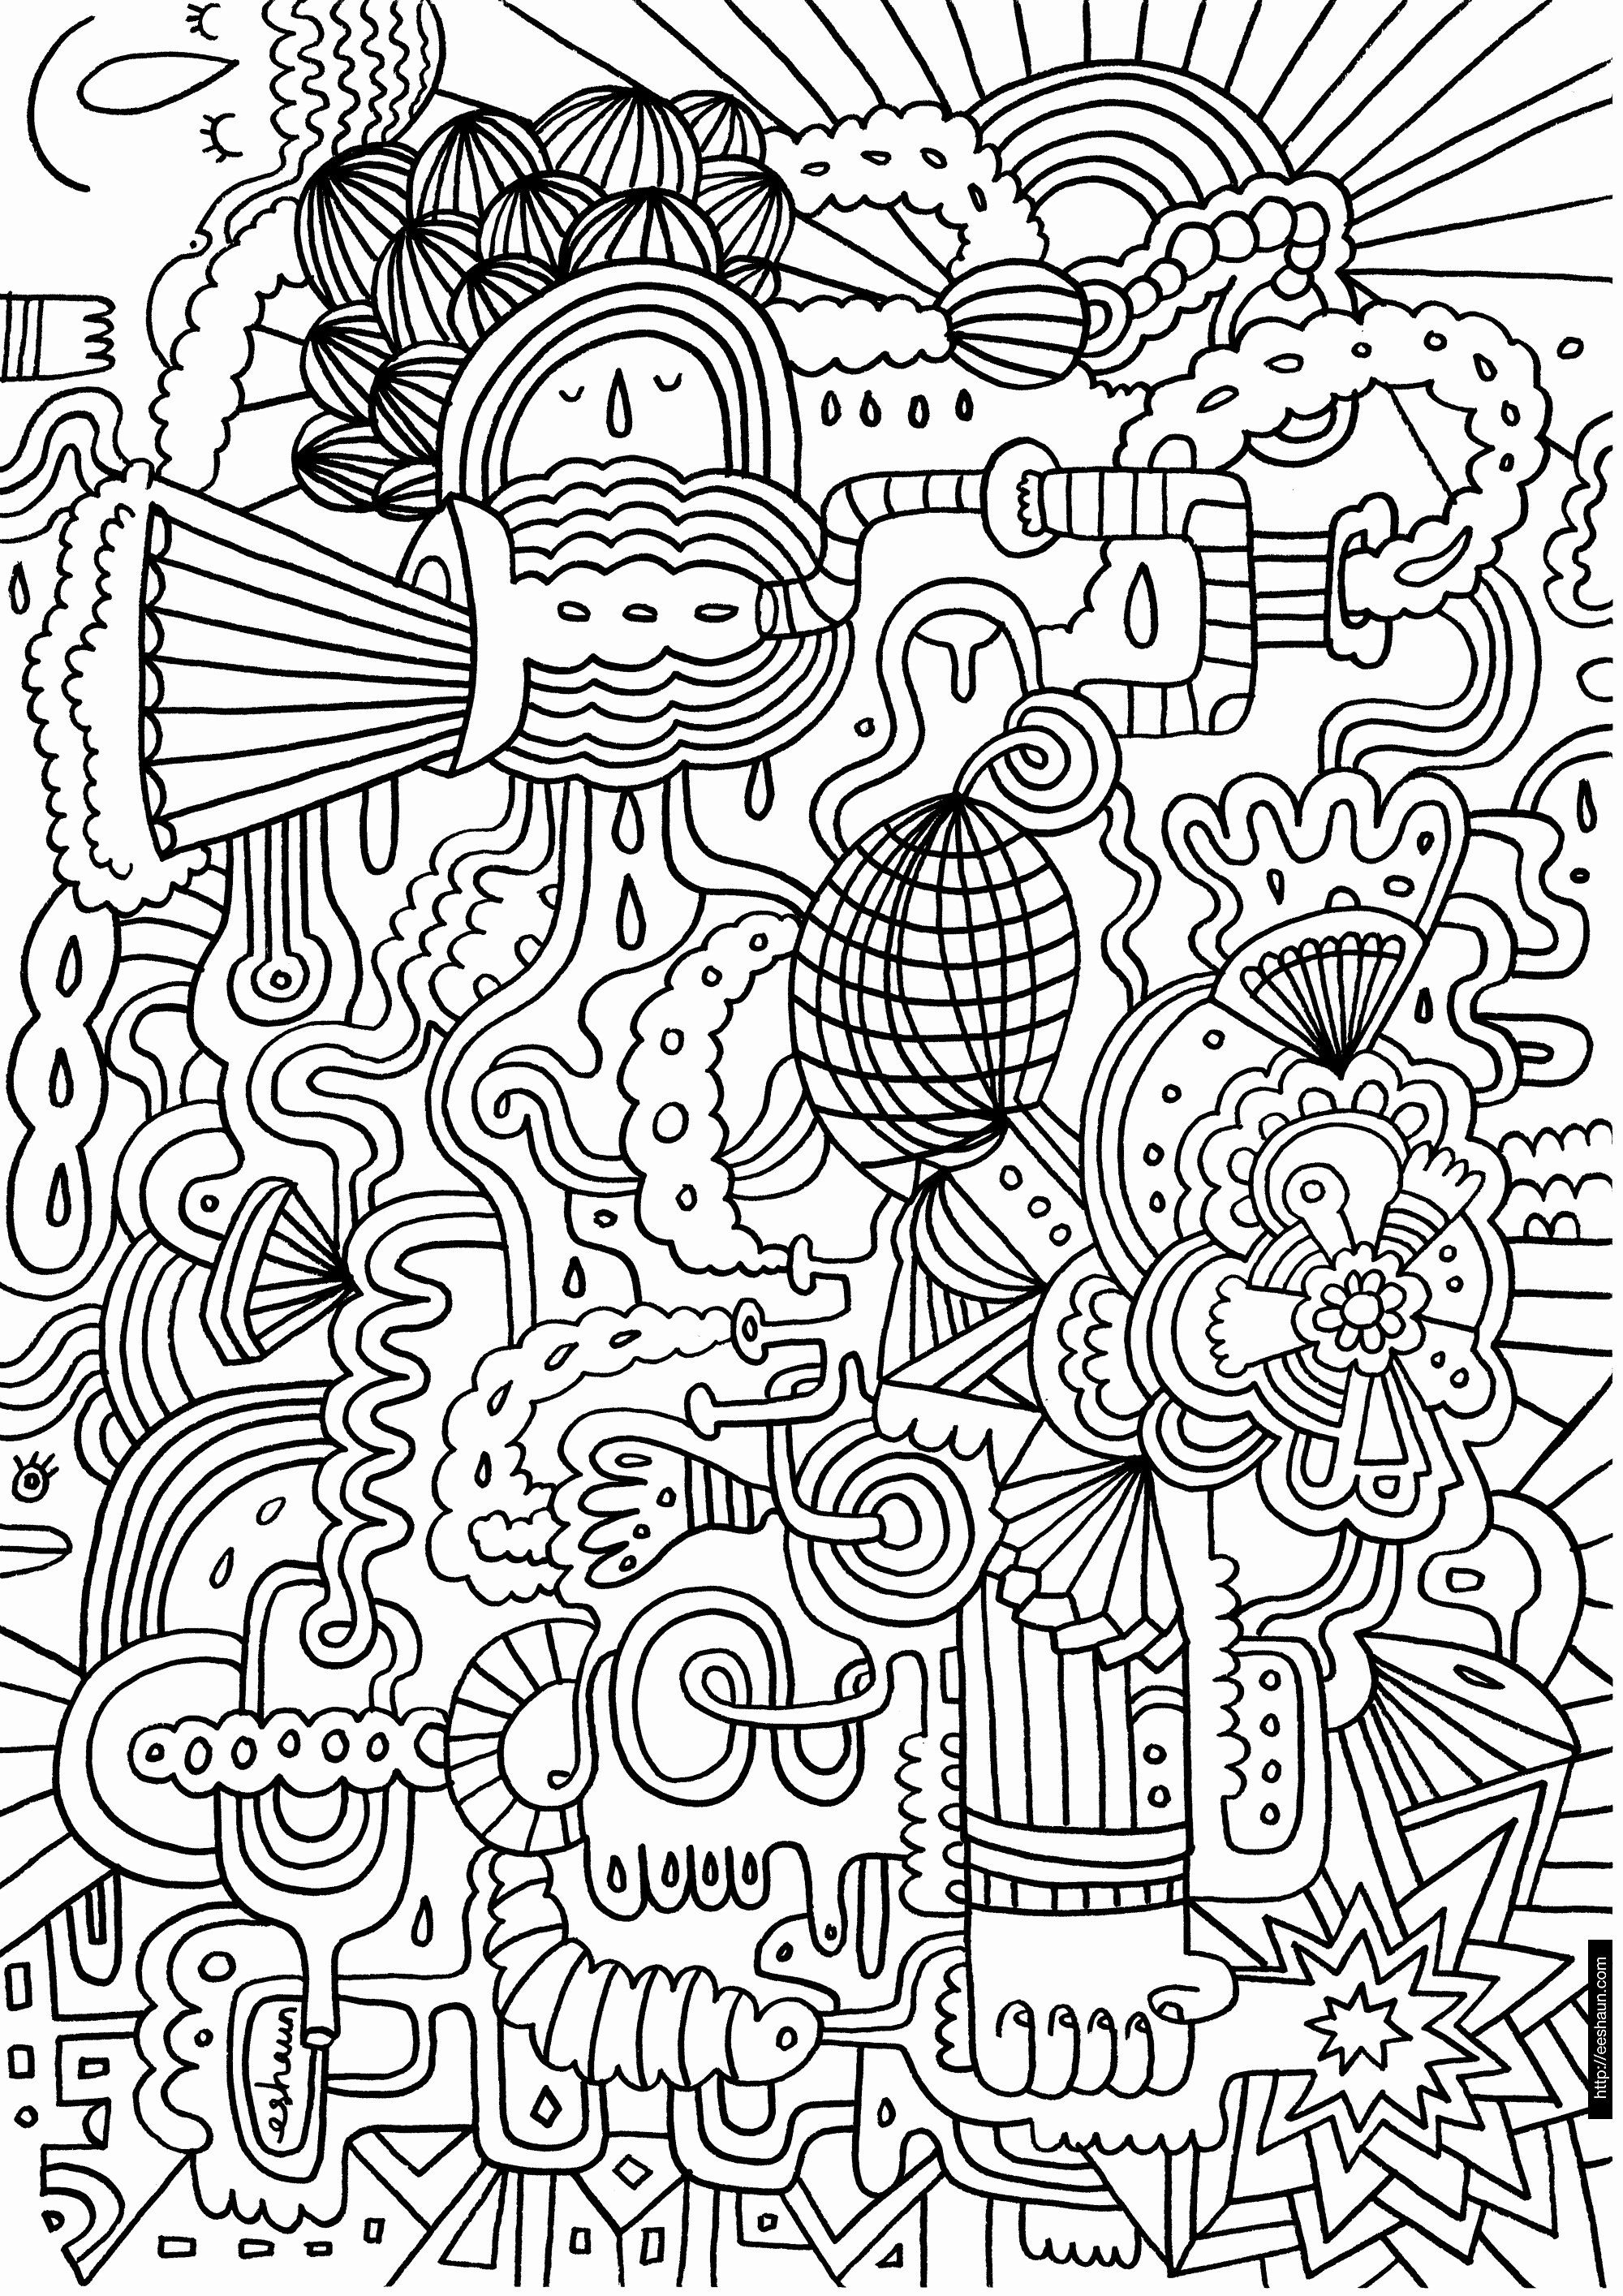 Hard To Color Coloring Pages Luxury Difficult Coloring Pages In 2020 Abstract Coloring Pages Coloring Pages For Teenagers Pattern Coloring Pages